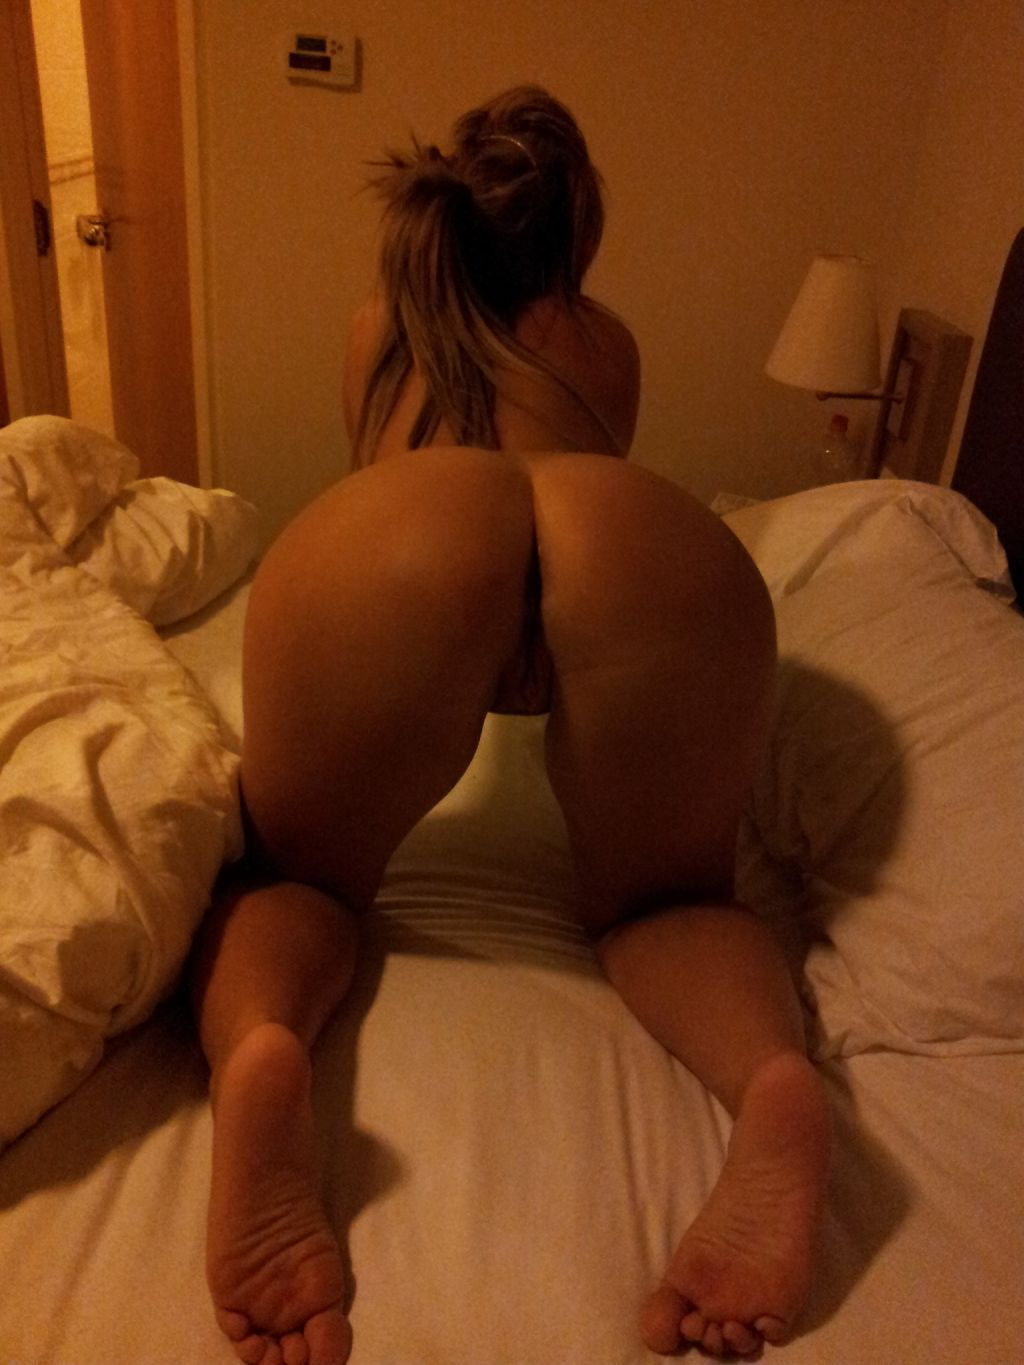 Over amateur college girl bent